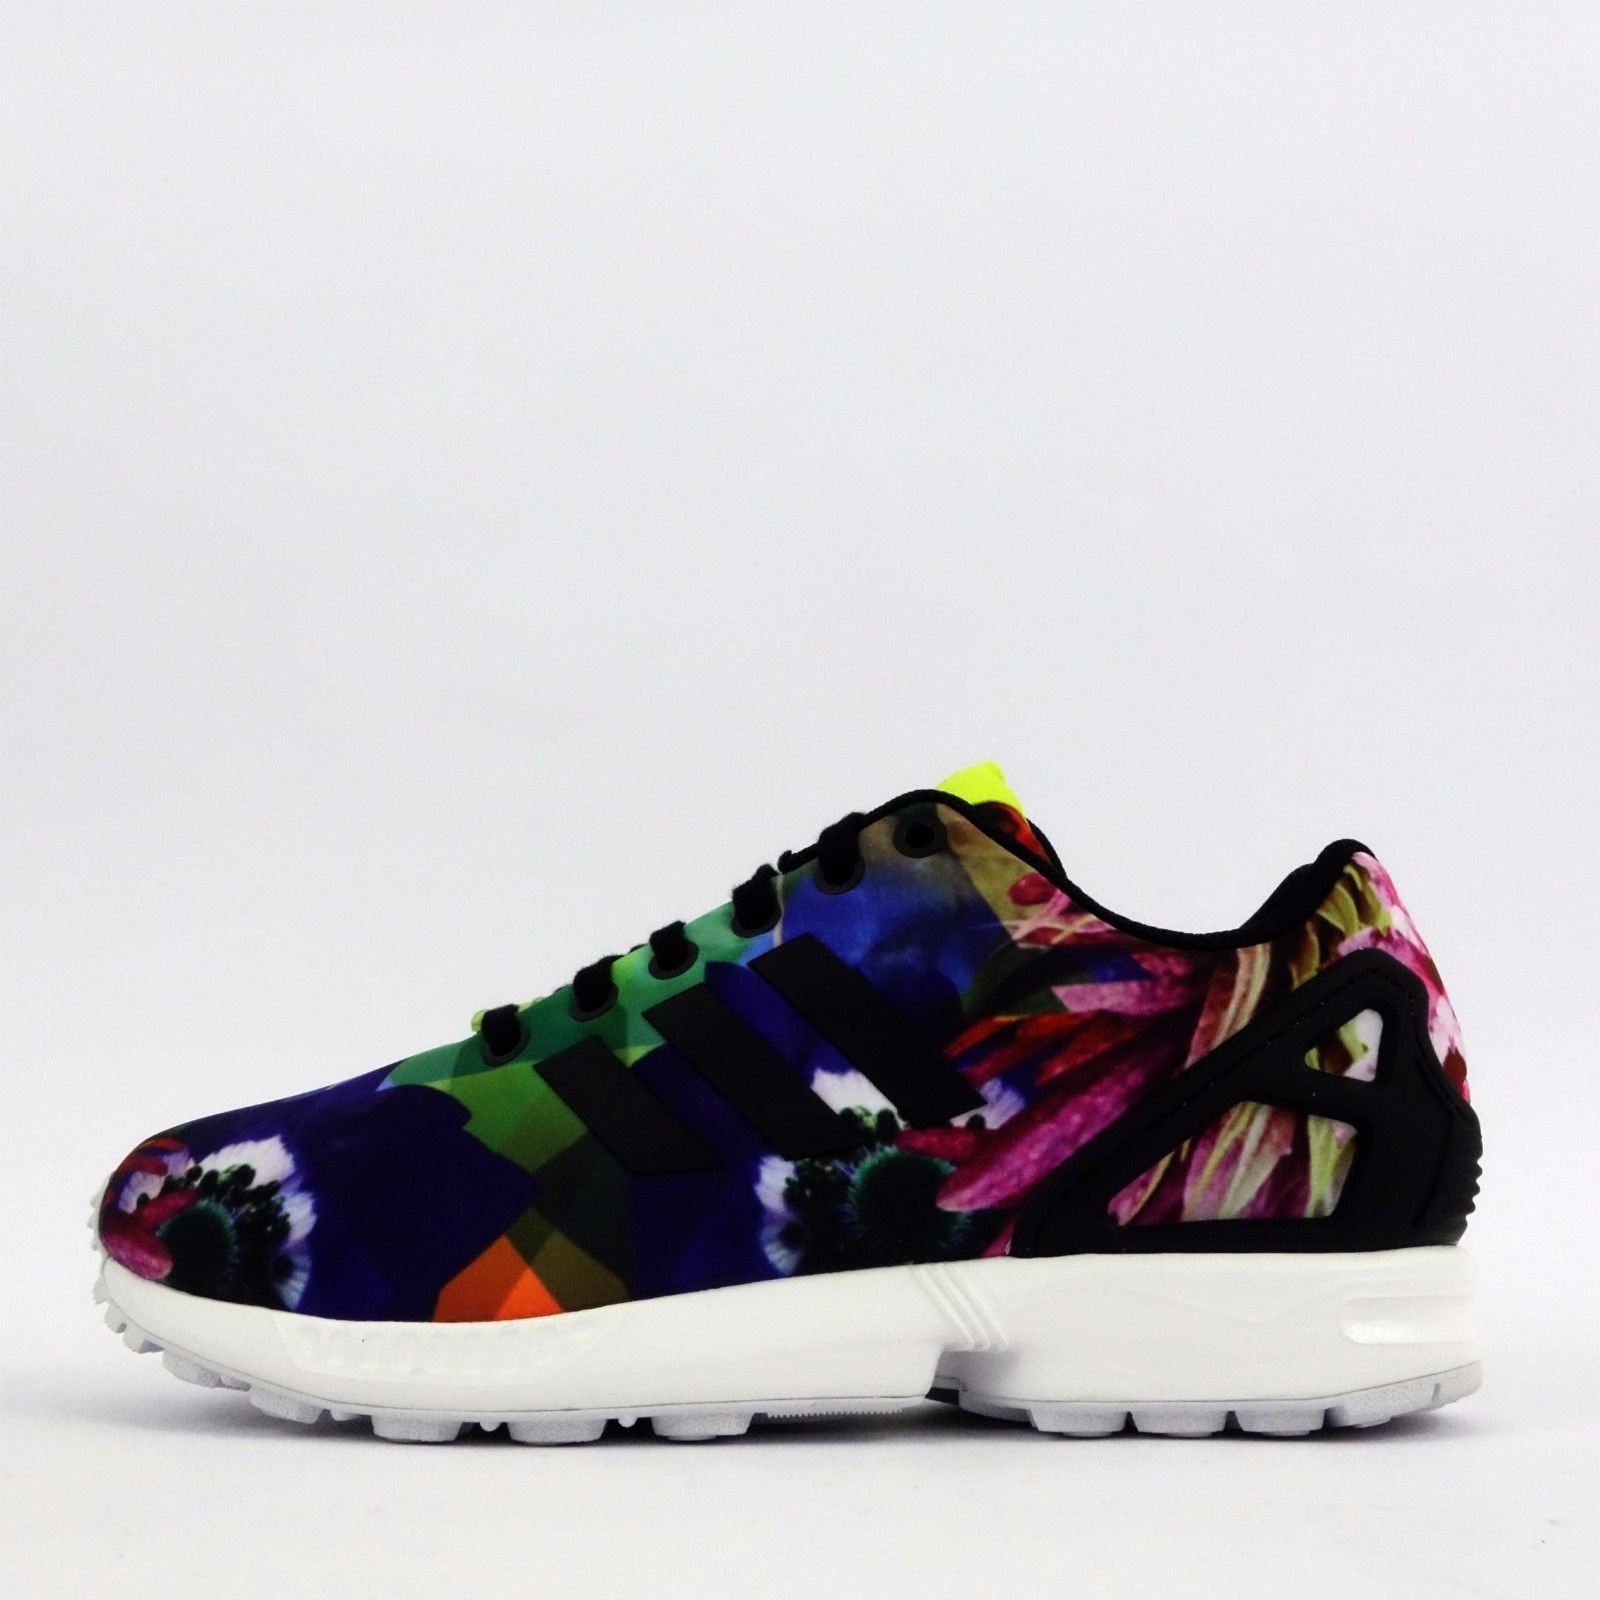 059133e5c19df Adidas Zx Flux Floral Mens wallbank-lfc.co.uk